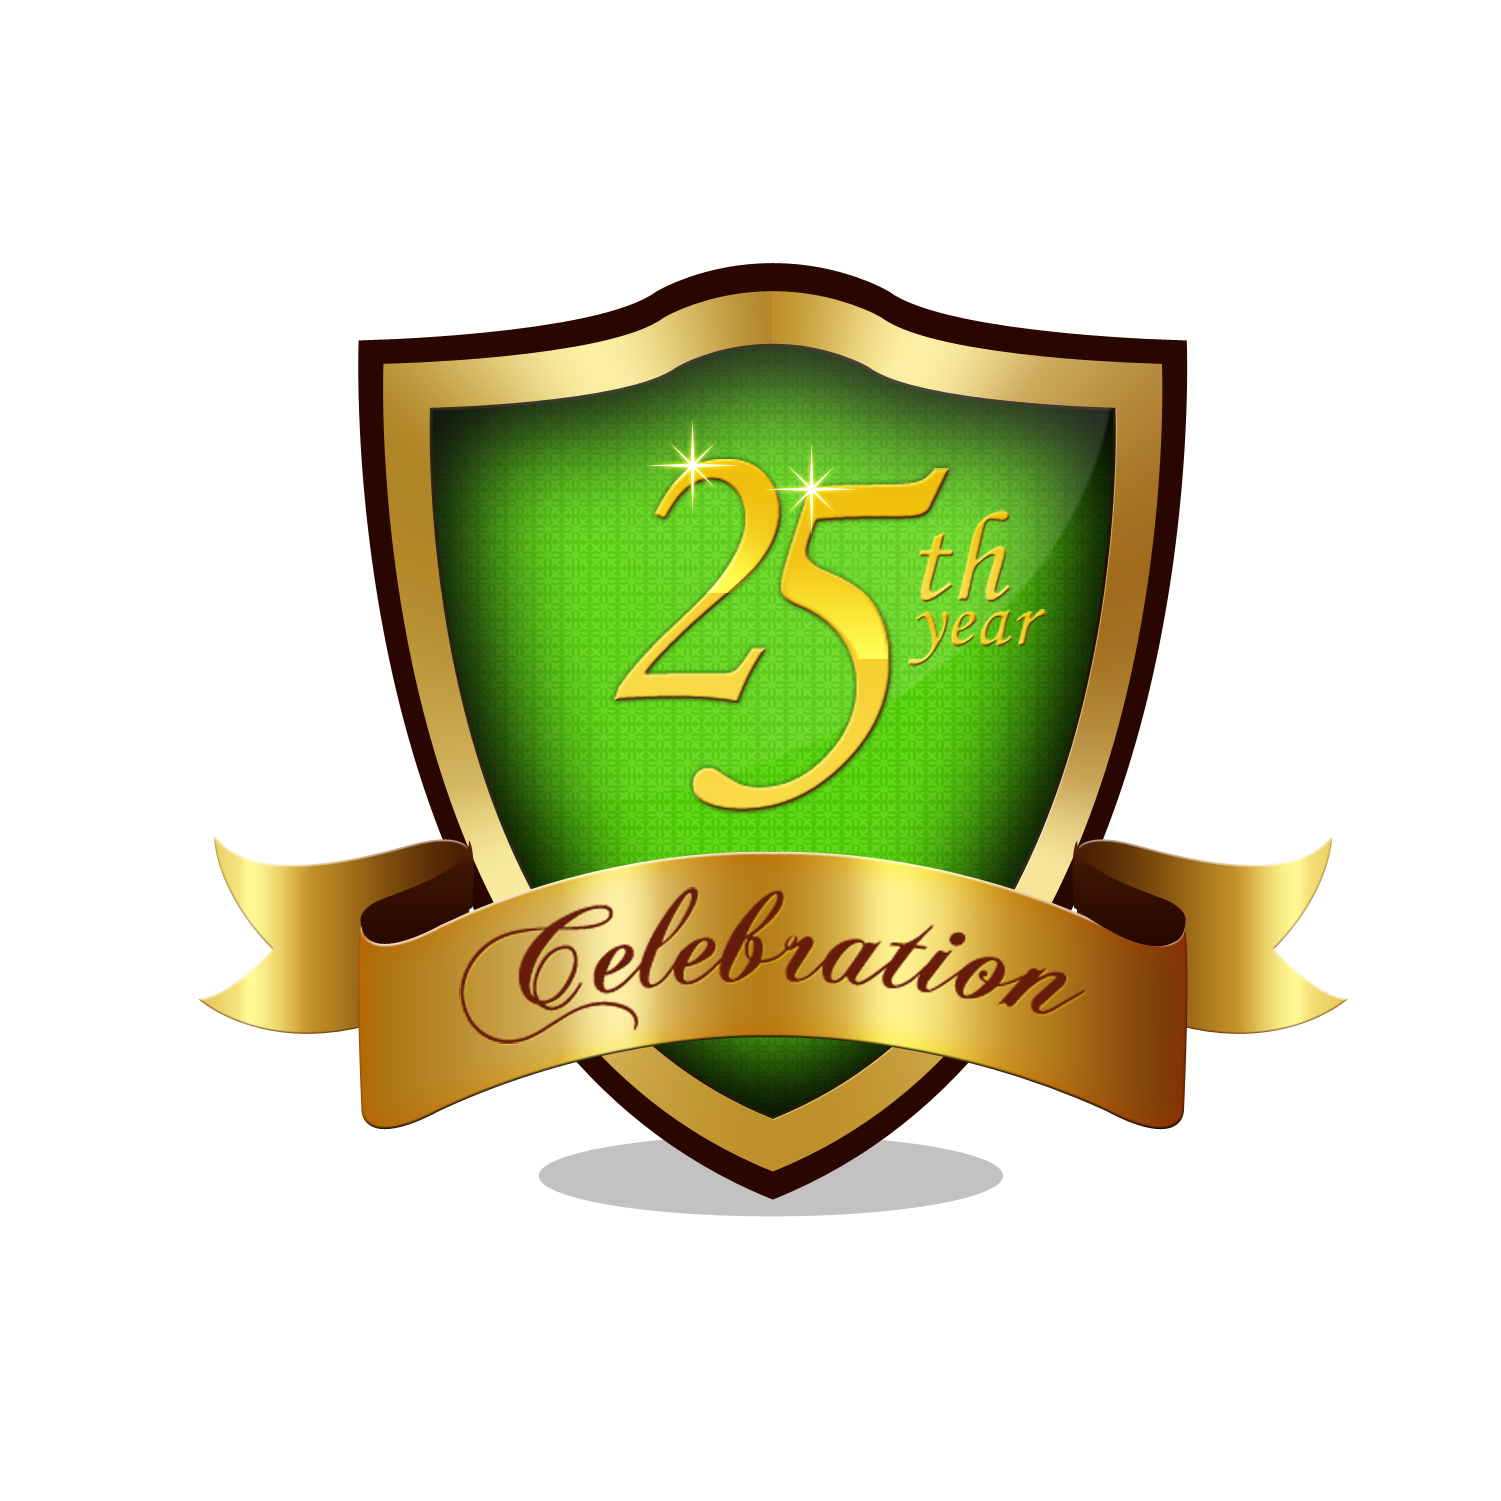 clipart royalty free stock Vector crest anniversary. Party the broach school